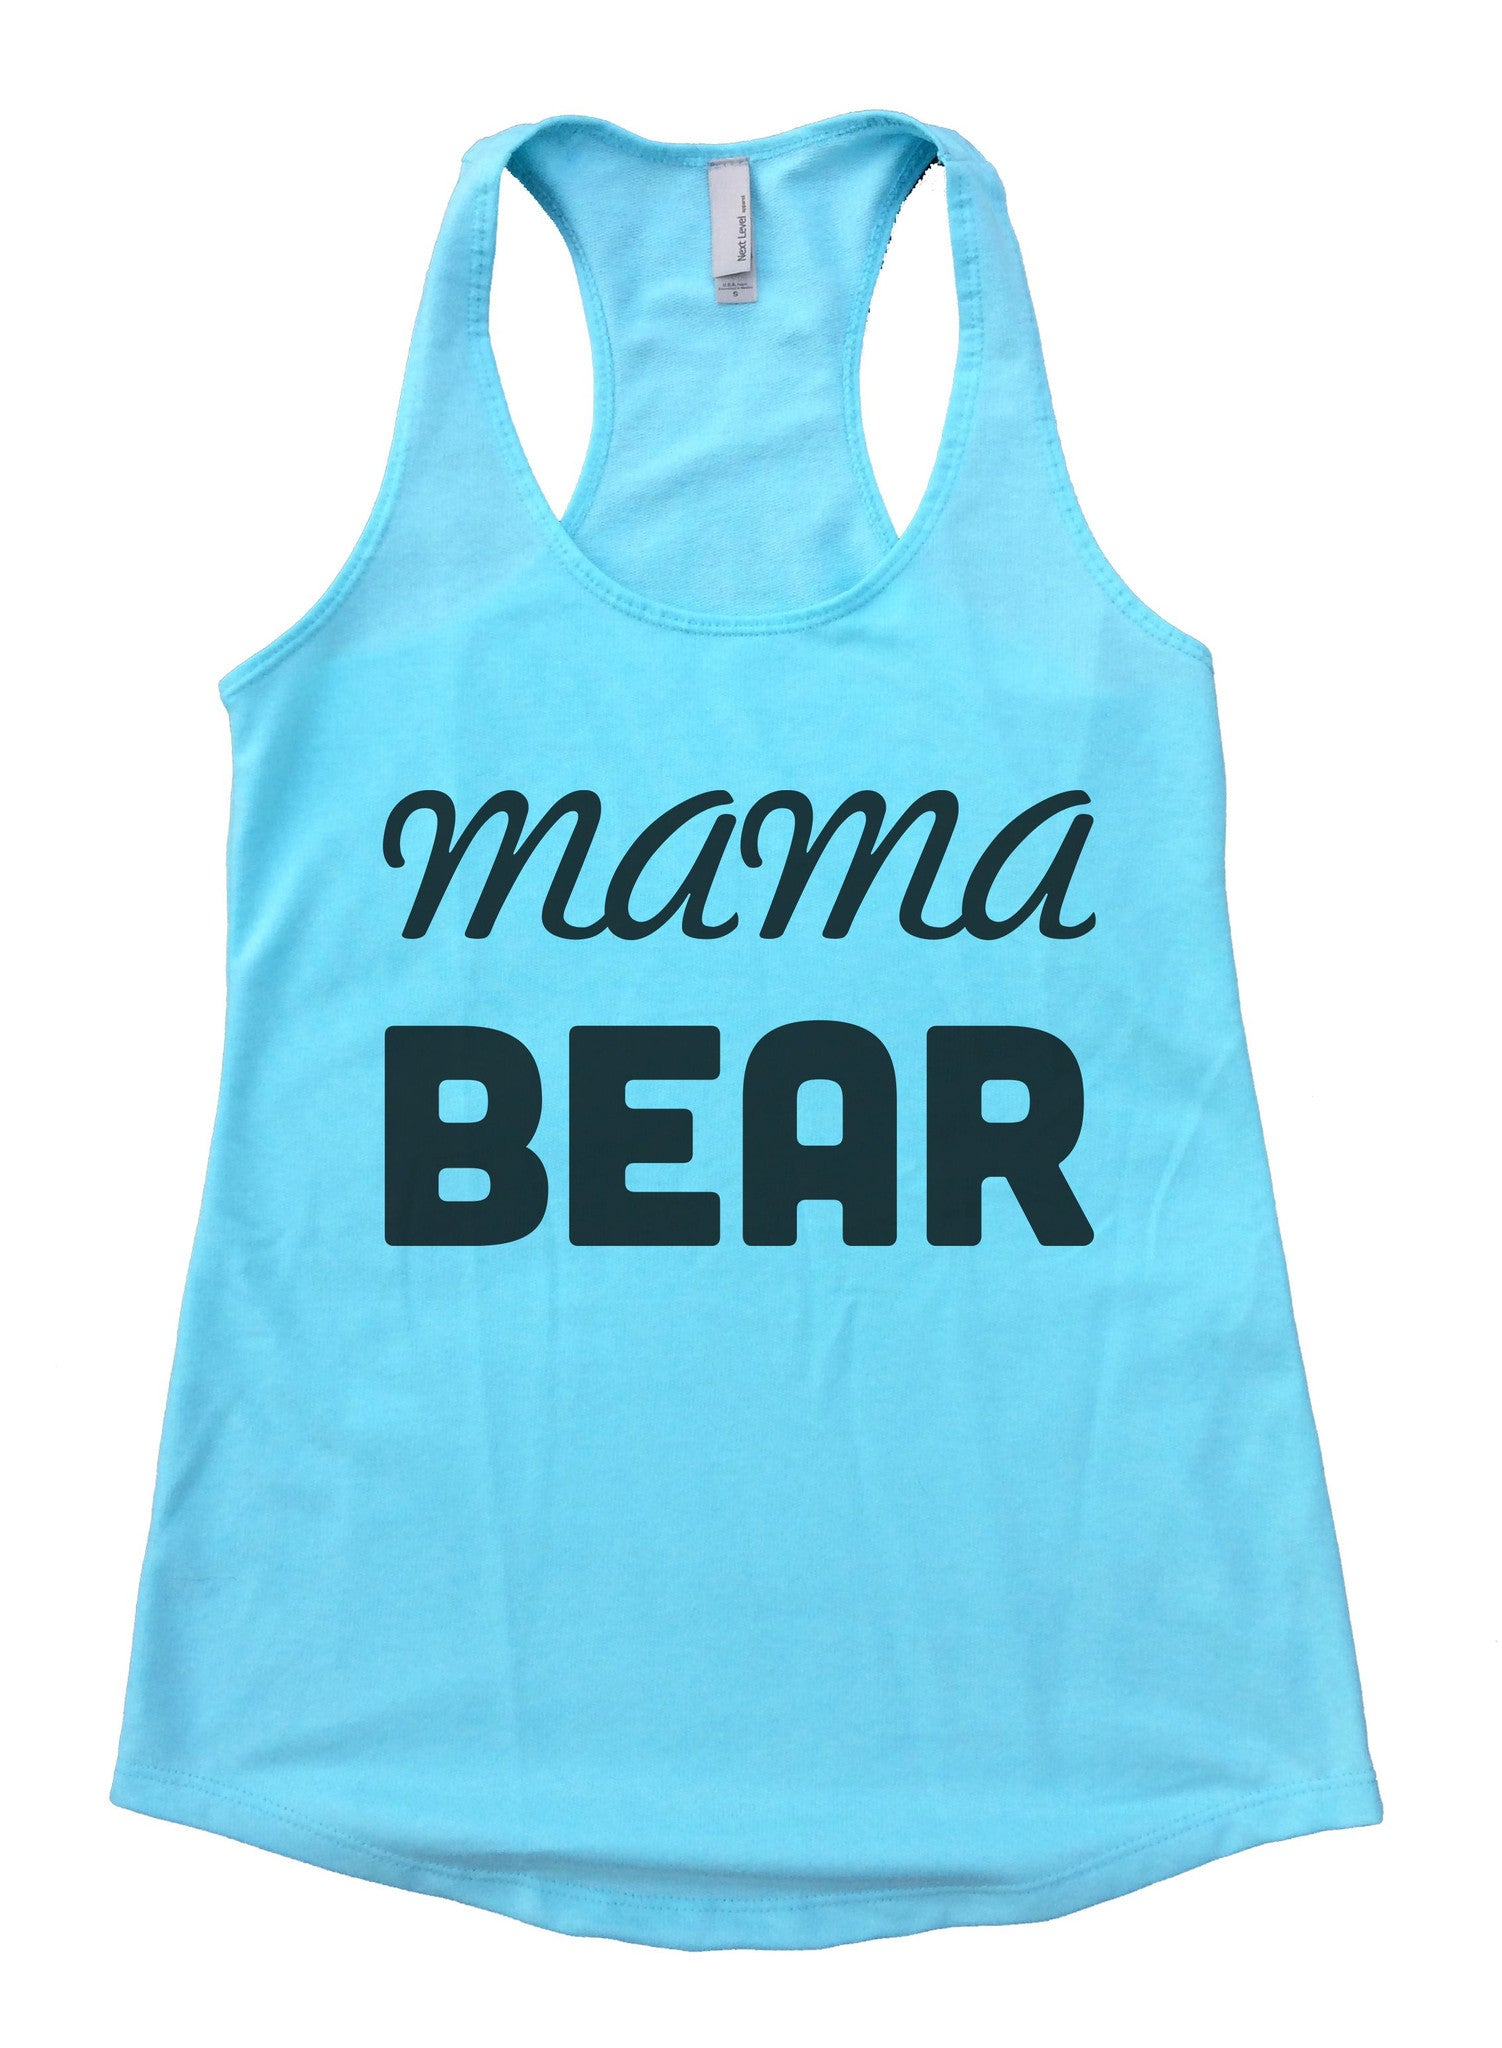 Mama Bear Womens Workout Tank Top F876 - Funny Shirts Tank Tops Burnouts and Triblends  - 2